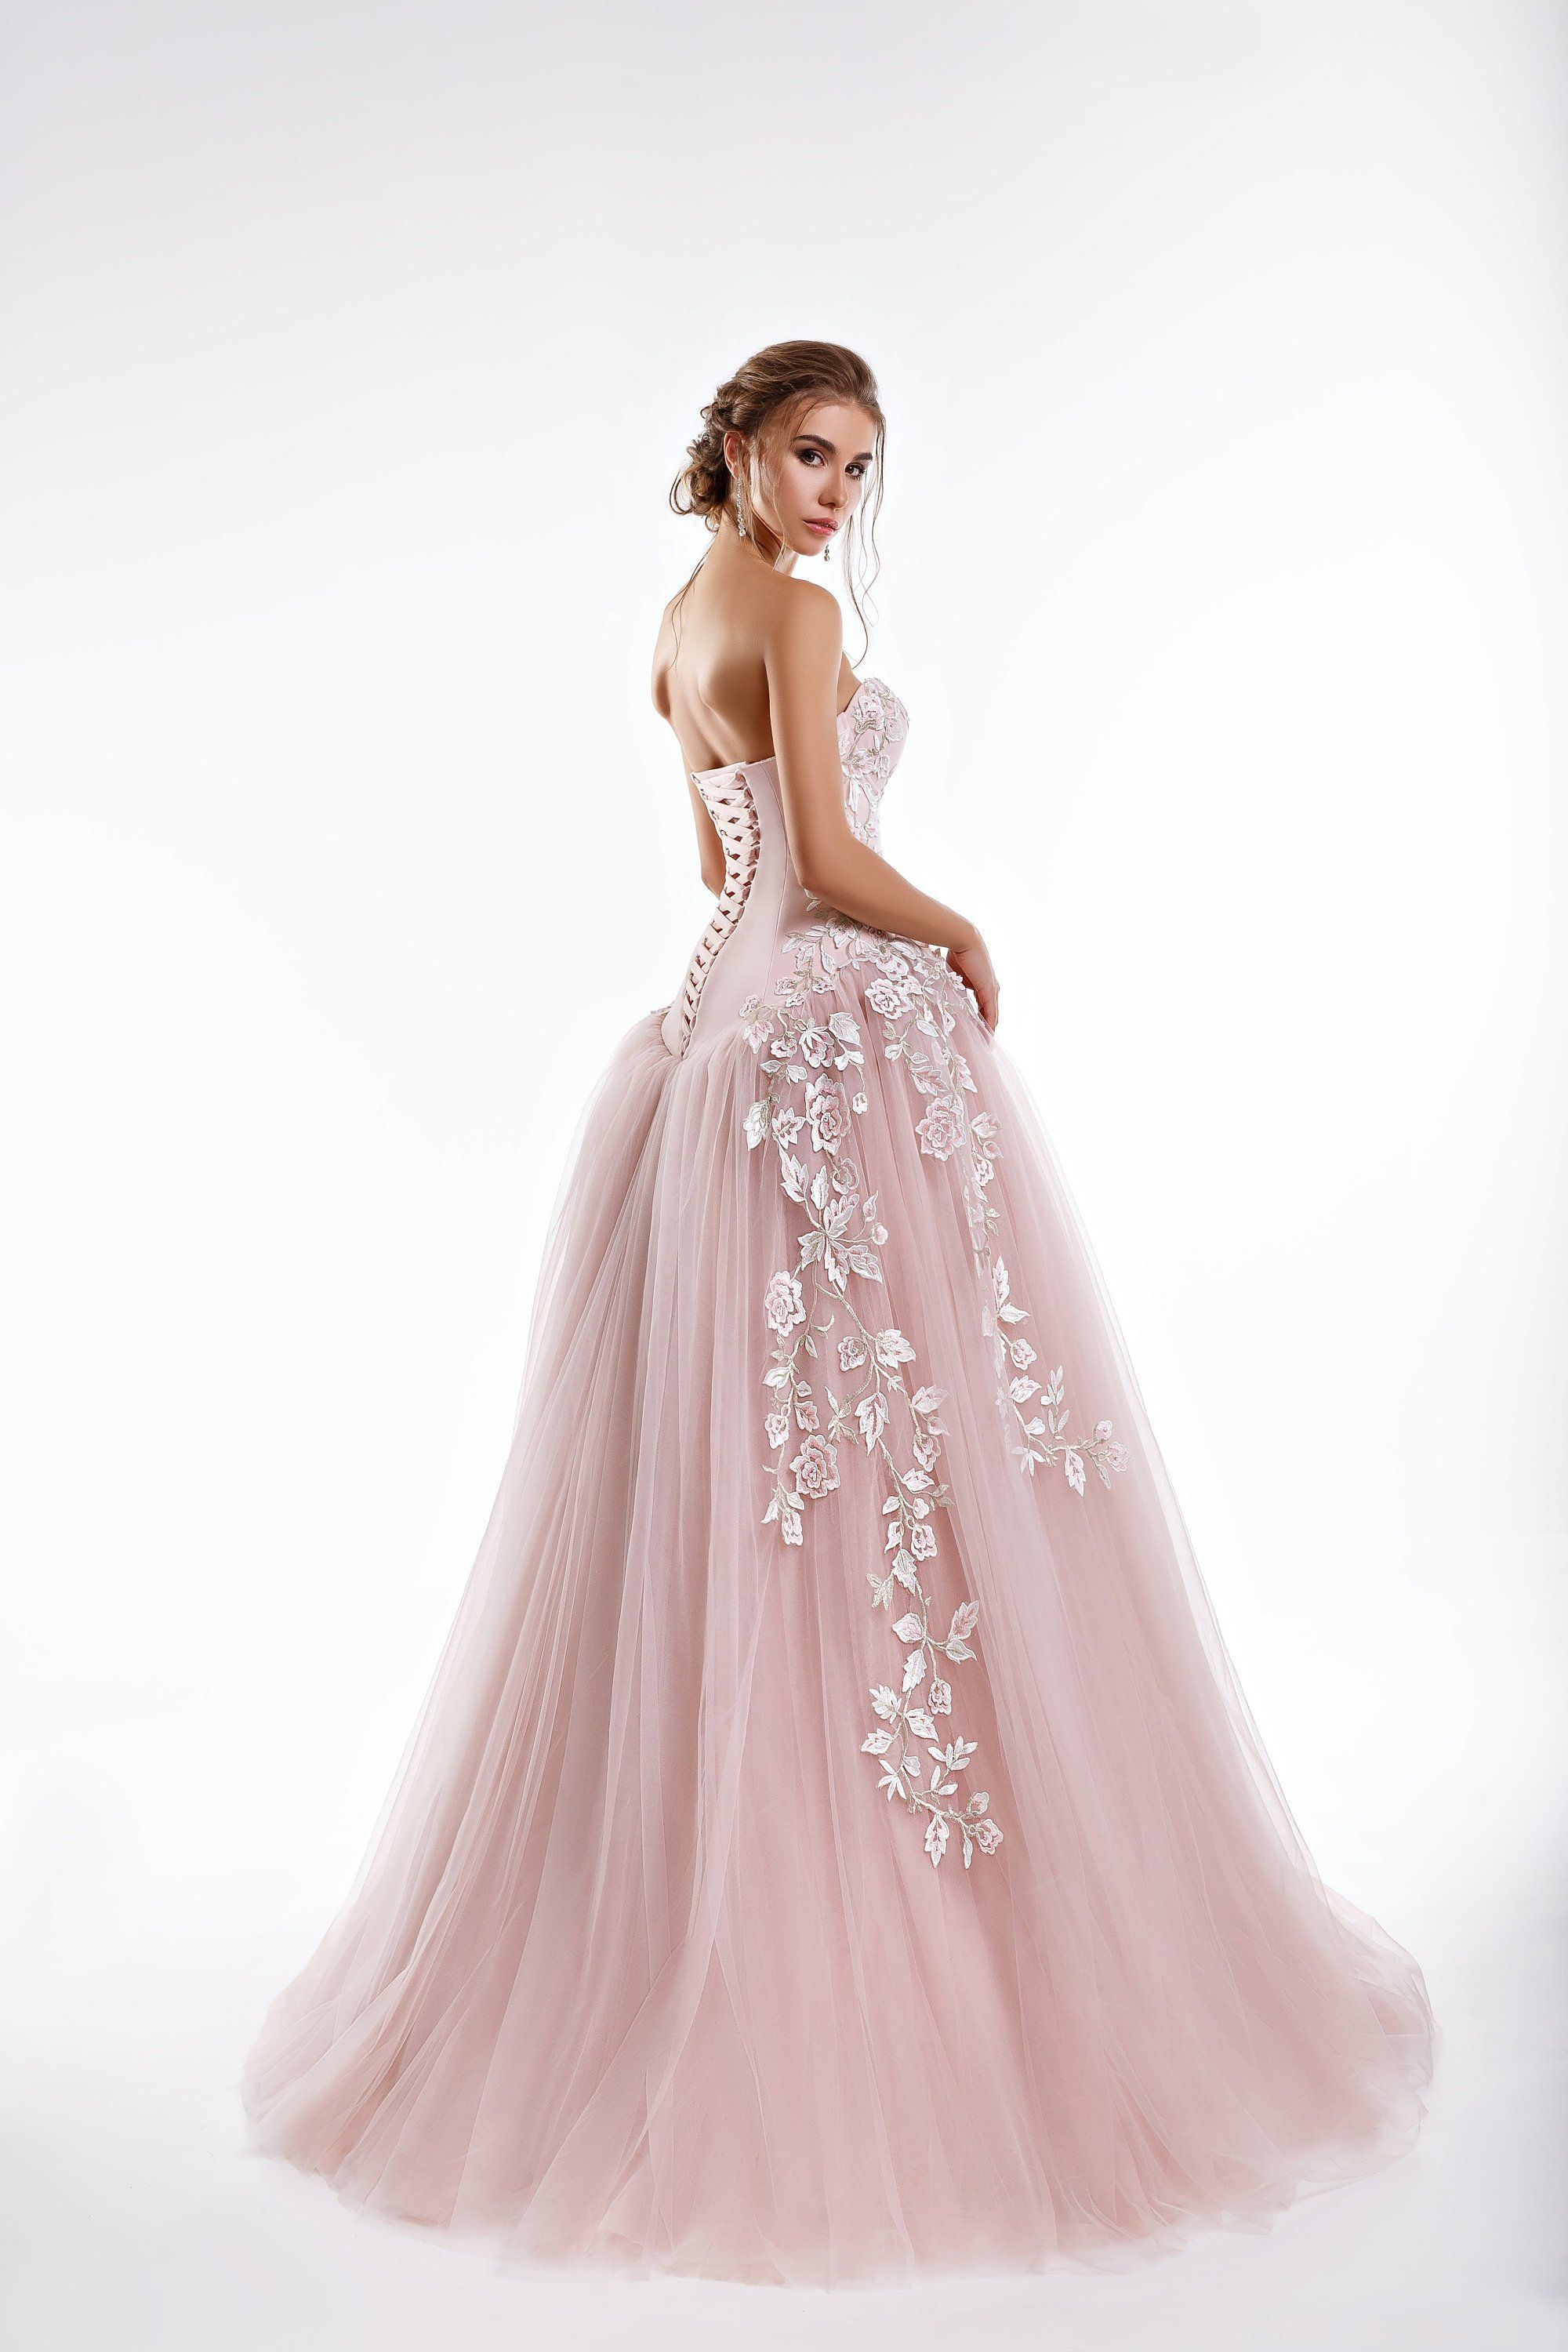 Romantic Floral Lace and Tulle ALine Wedding Dress with